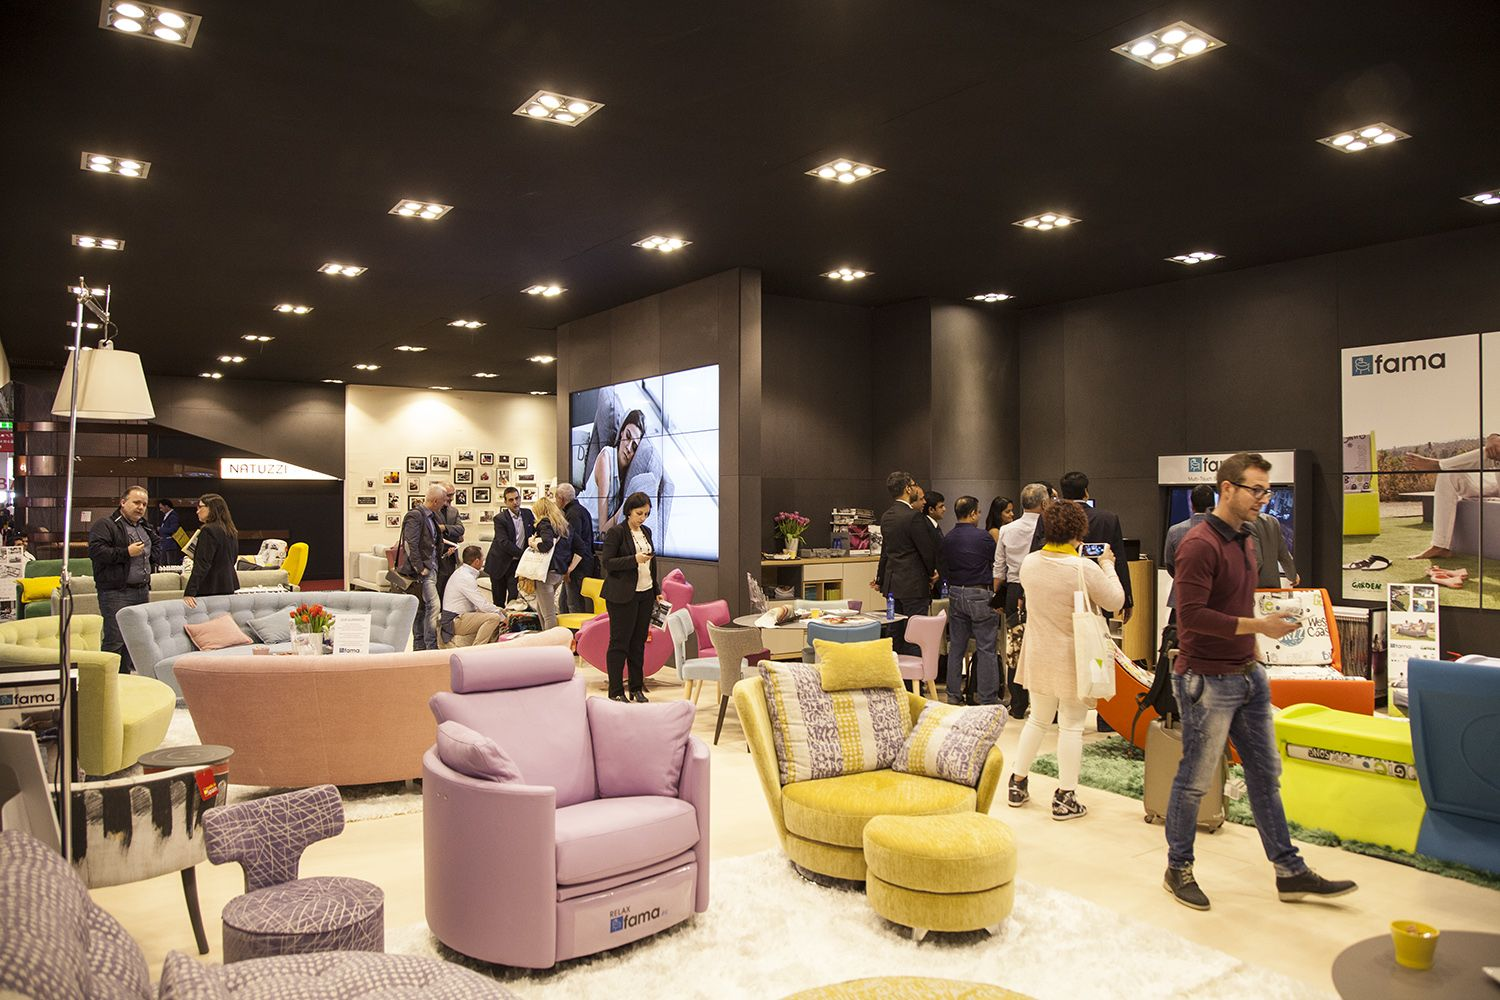 Are You Ready for Salone del Mobile Milano 2019 - Exhibition isaloni 2019 Are You Ready for Salone del Mobile Milano – iSaloni 2019? Are You Ready for Salone del Mobile Milano 2019 Exhibition